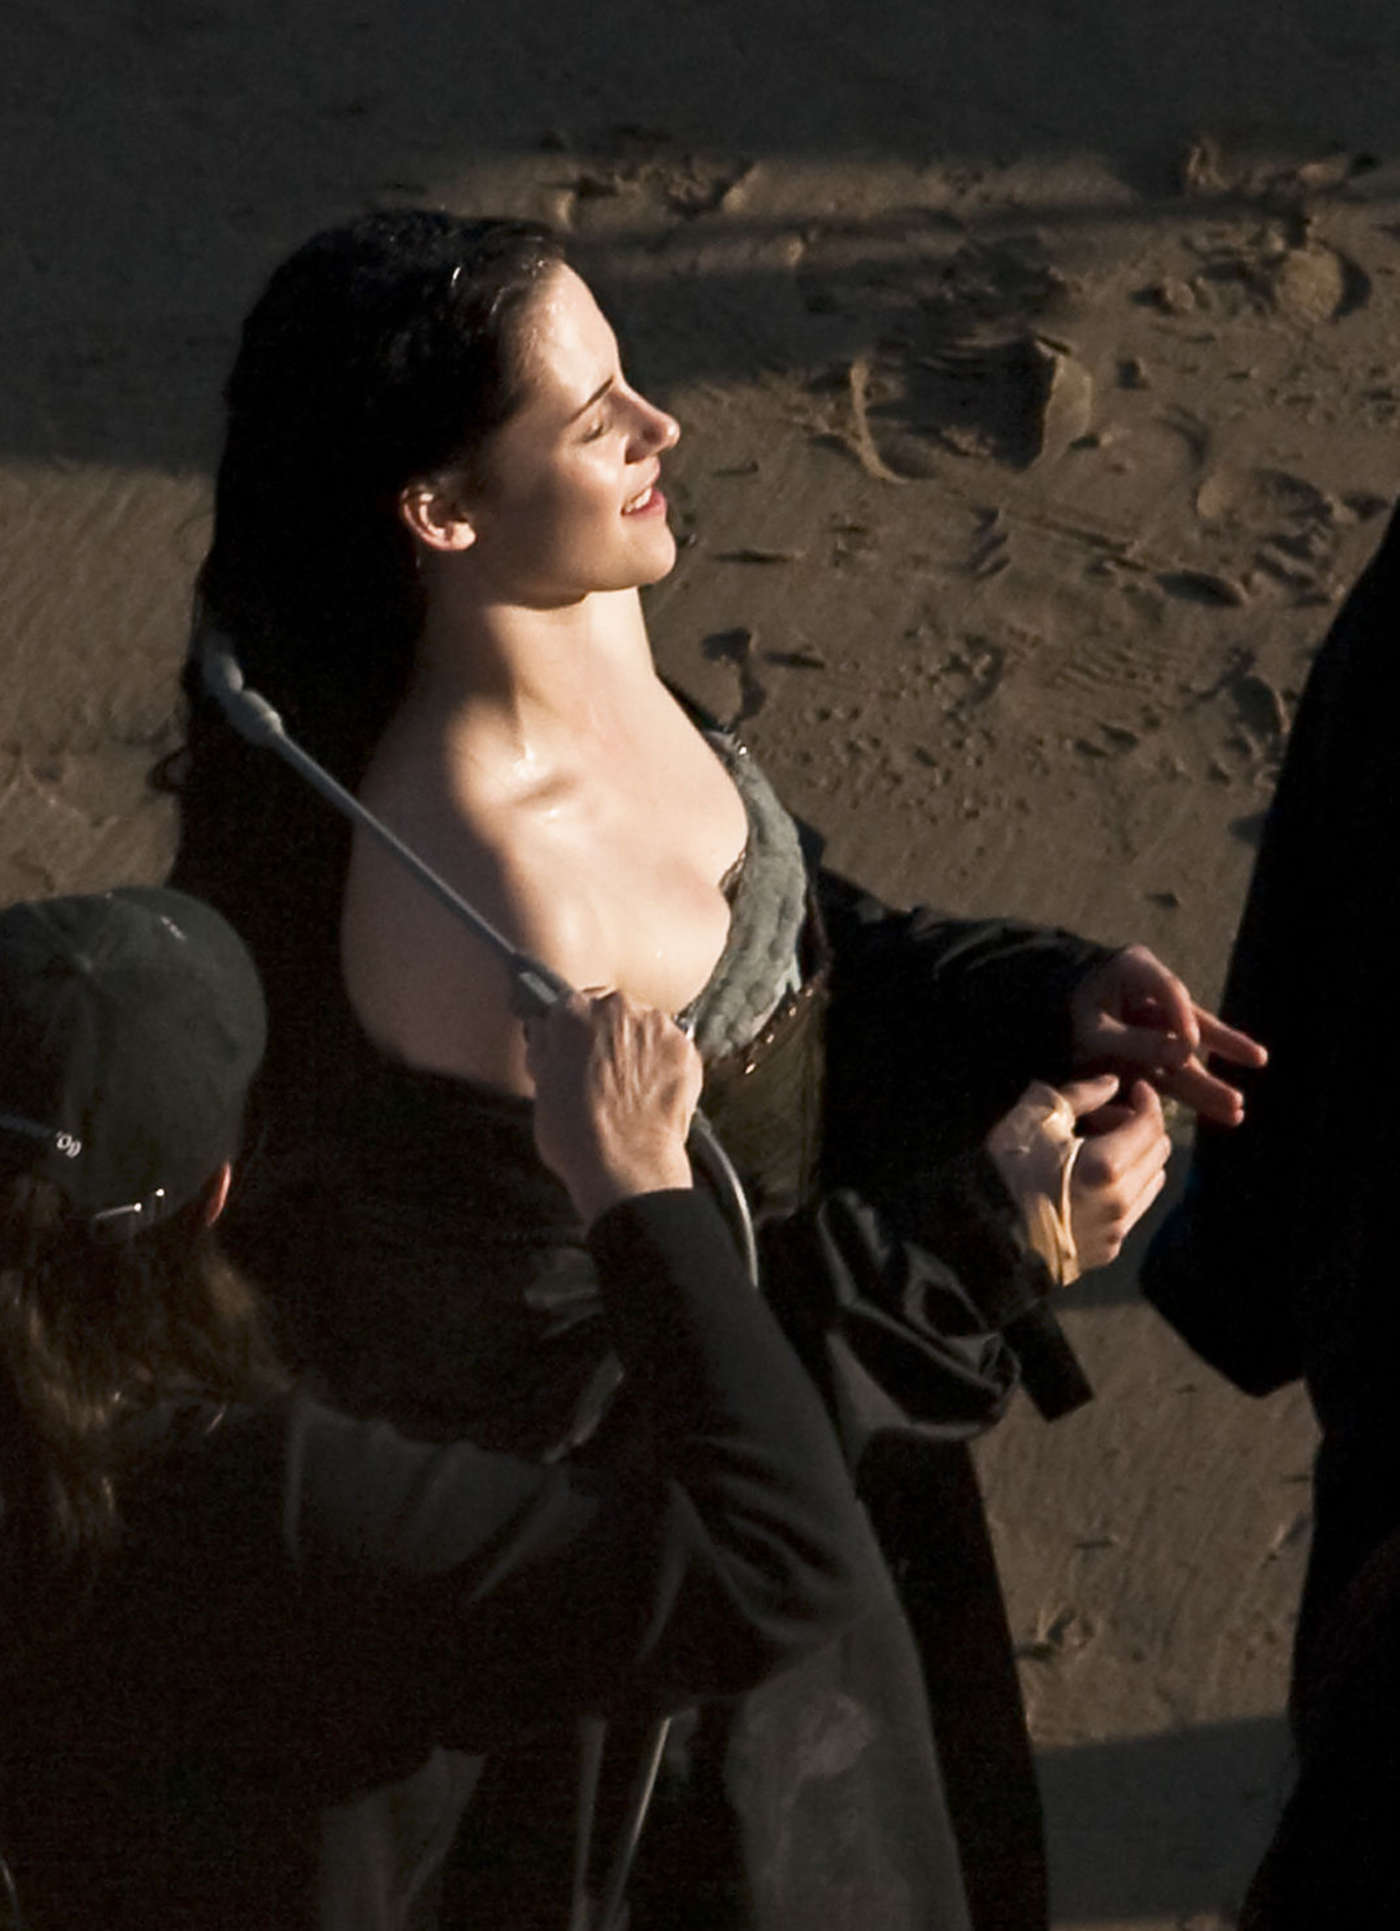 Kristen Stewart On The Set Of Snow White And The Huntsman